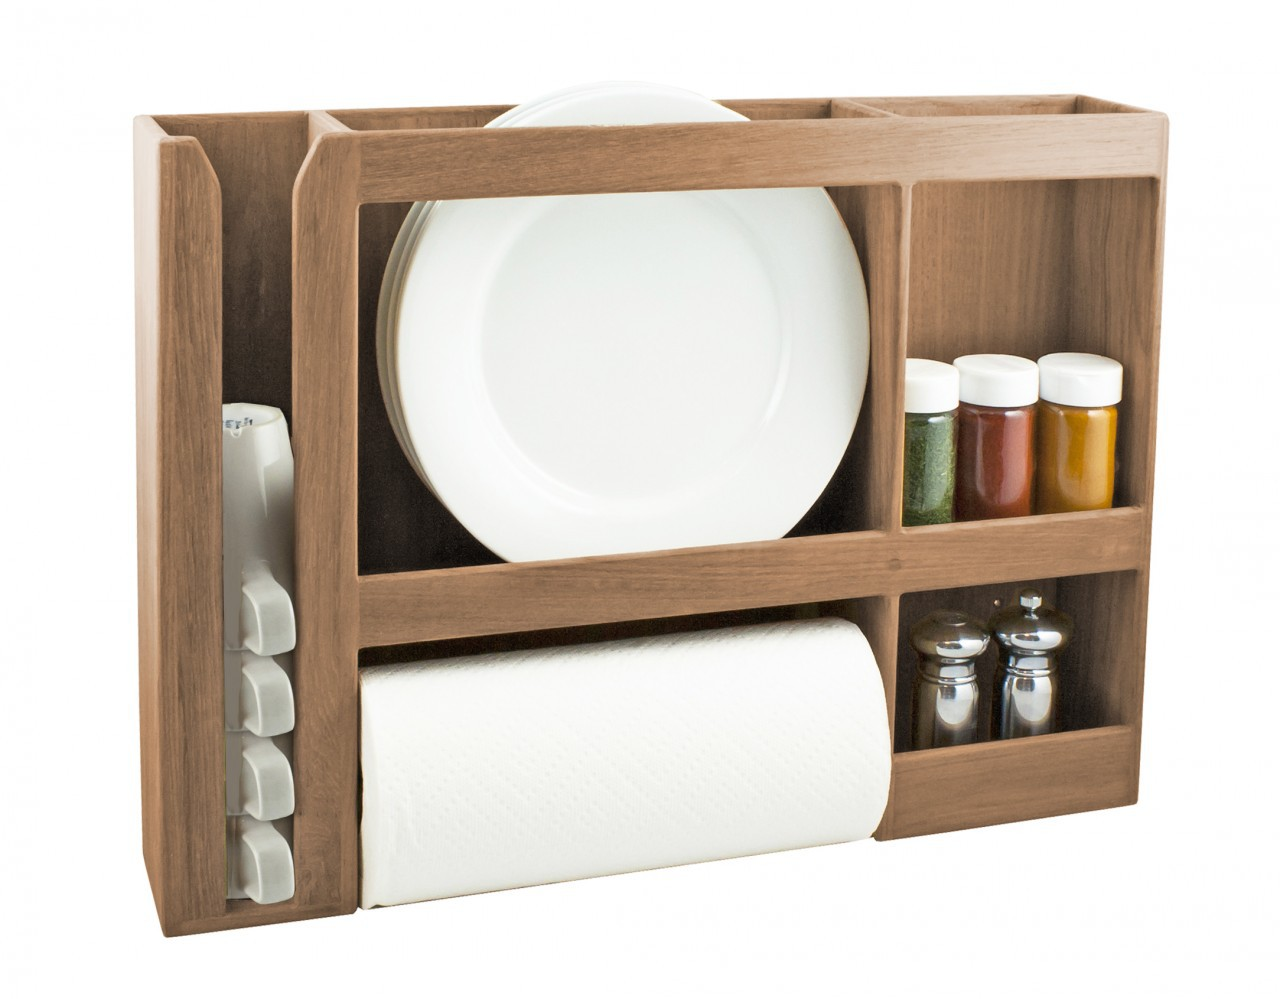 Storage Ideas And Space Saving Inspiration From Sailors